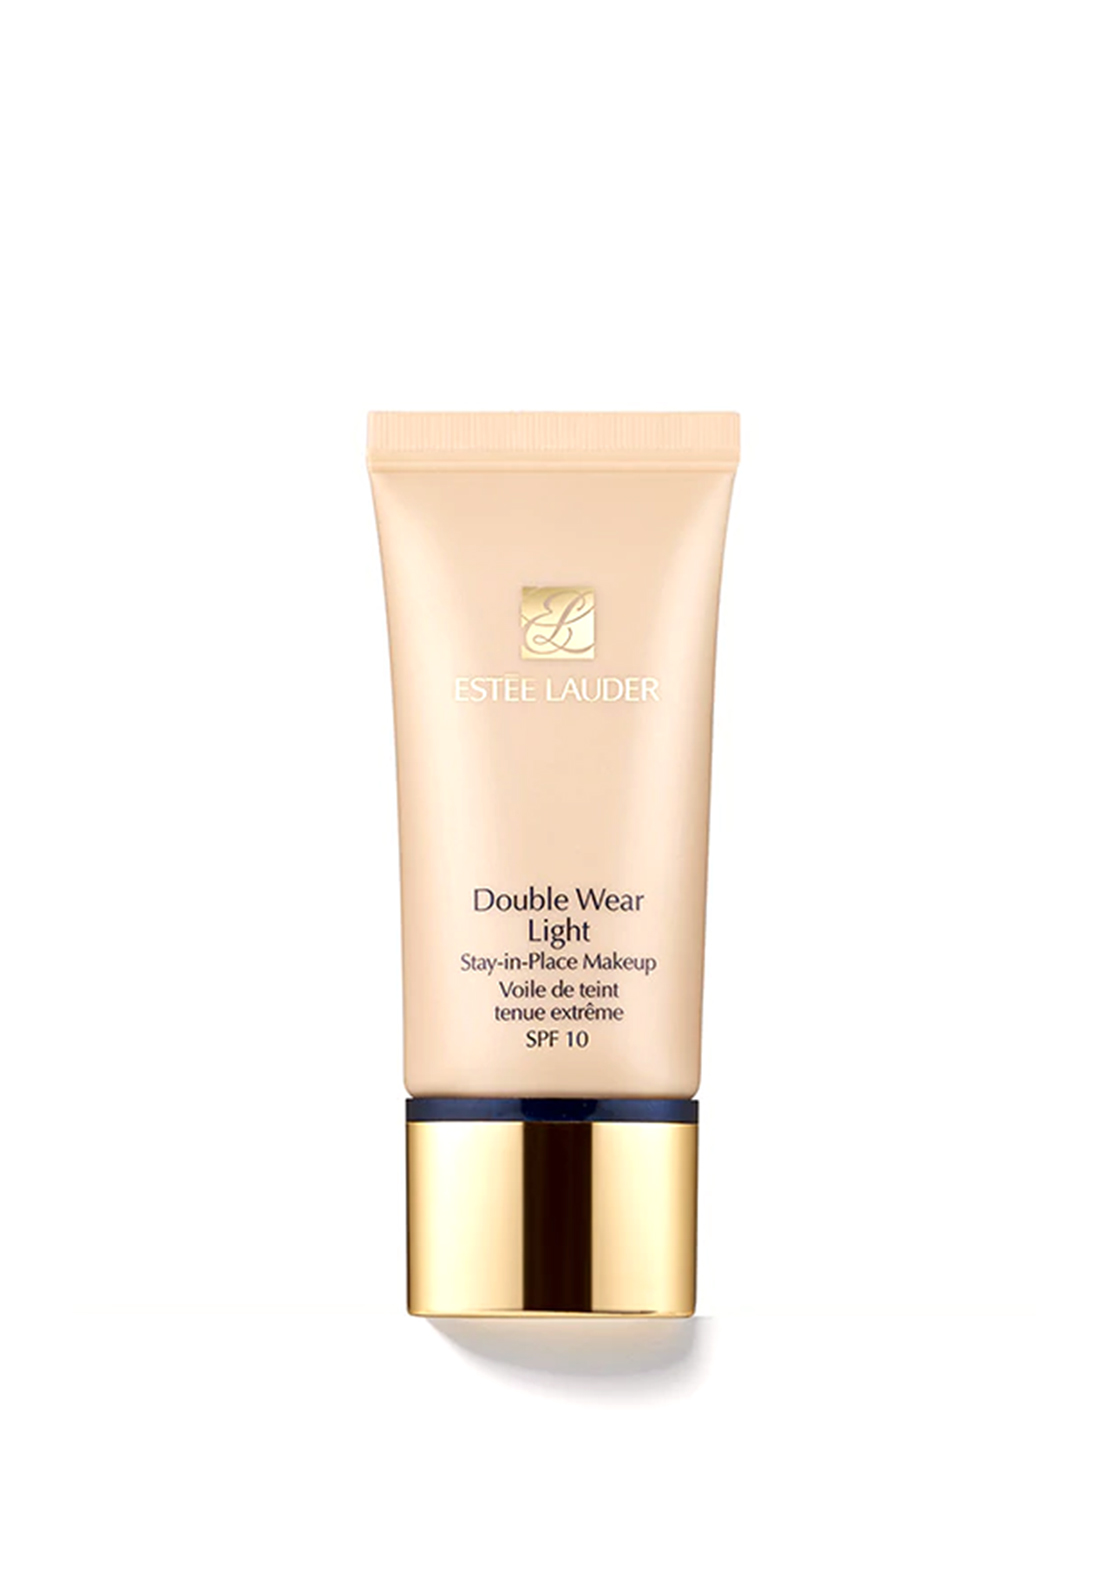 Estee Lauder Double Wear Light Stay-in-Place Make Up SPF 10, Intensity 1.0